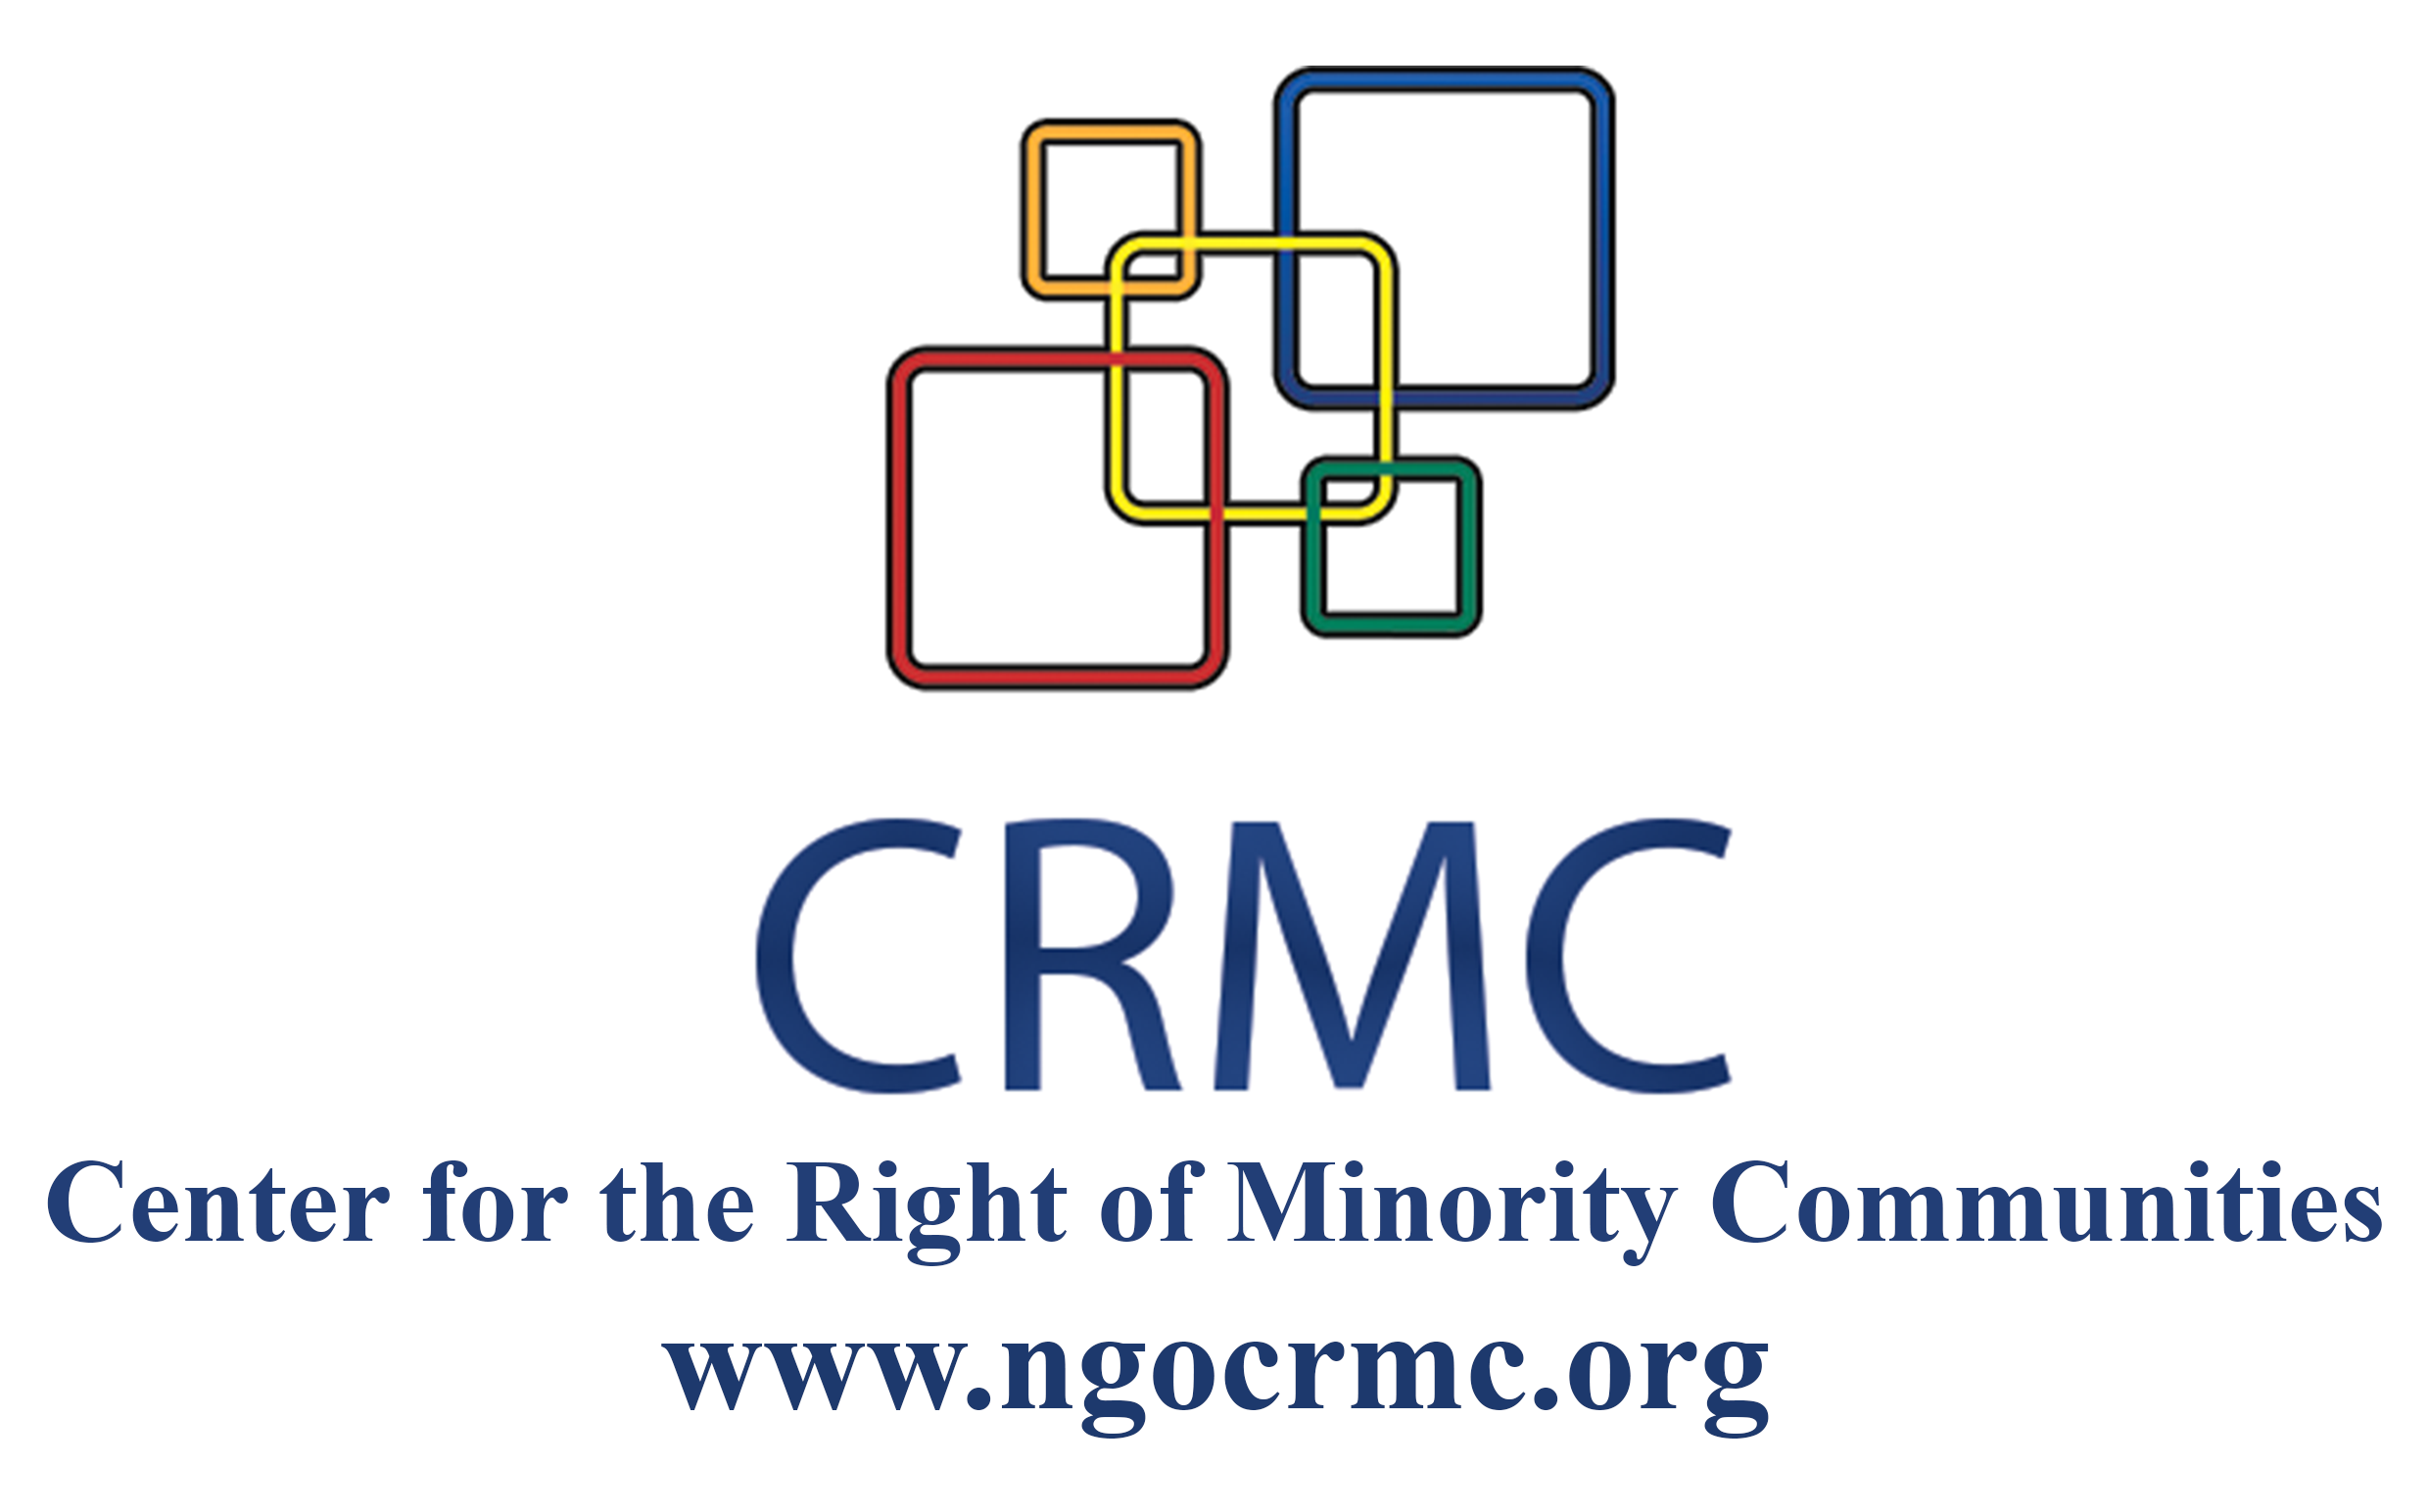 NGO CRMC- NGO Center for the Rights of Minority